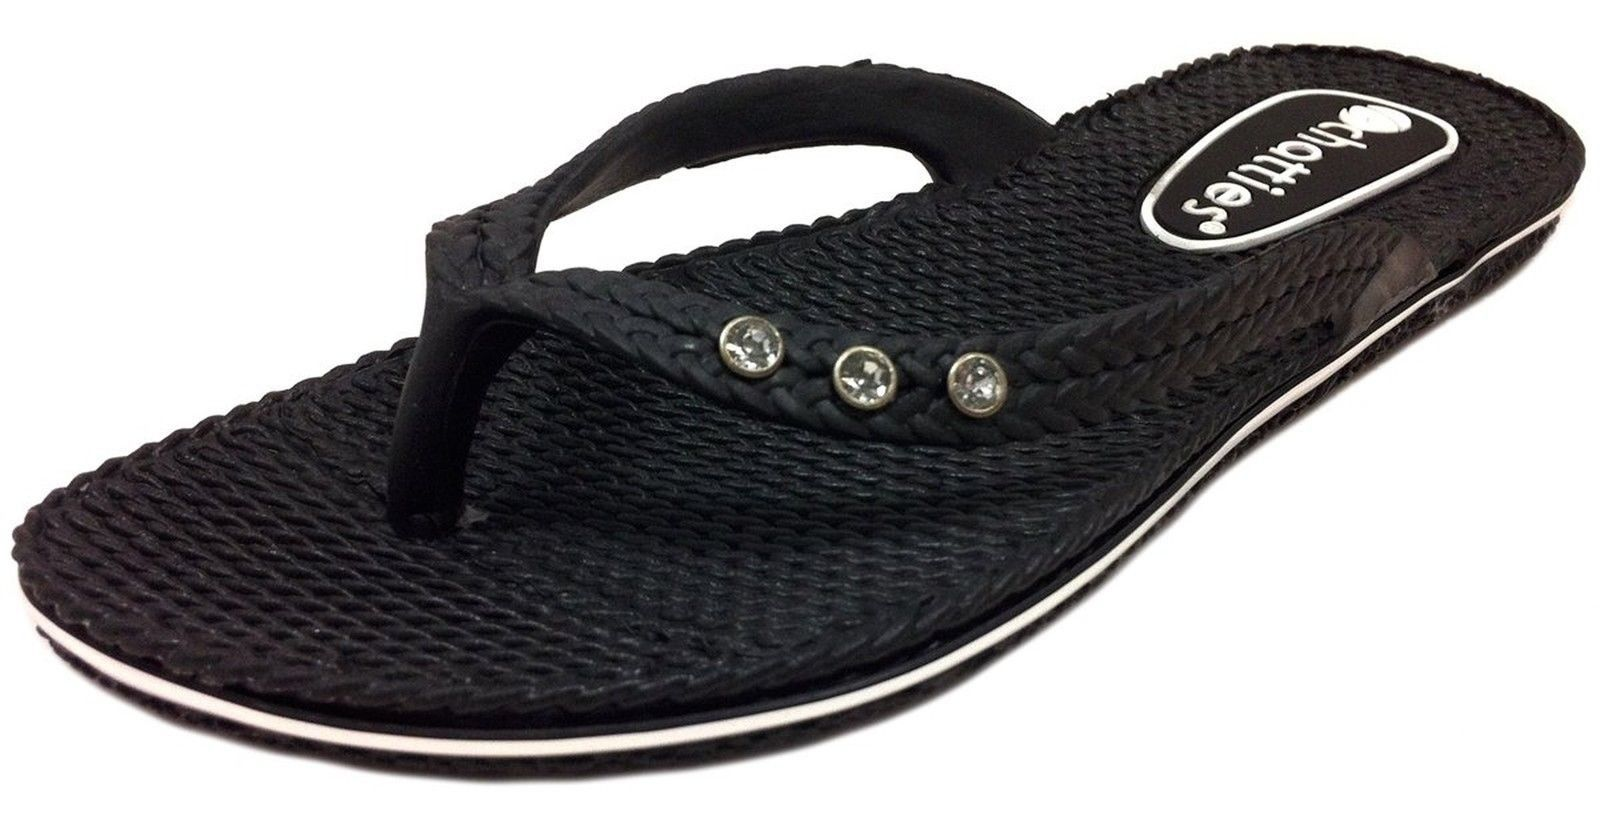 72 Pairs  Ladies Solid Black Comfort Flip Flop with Rhinestones